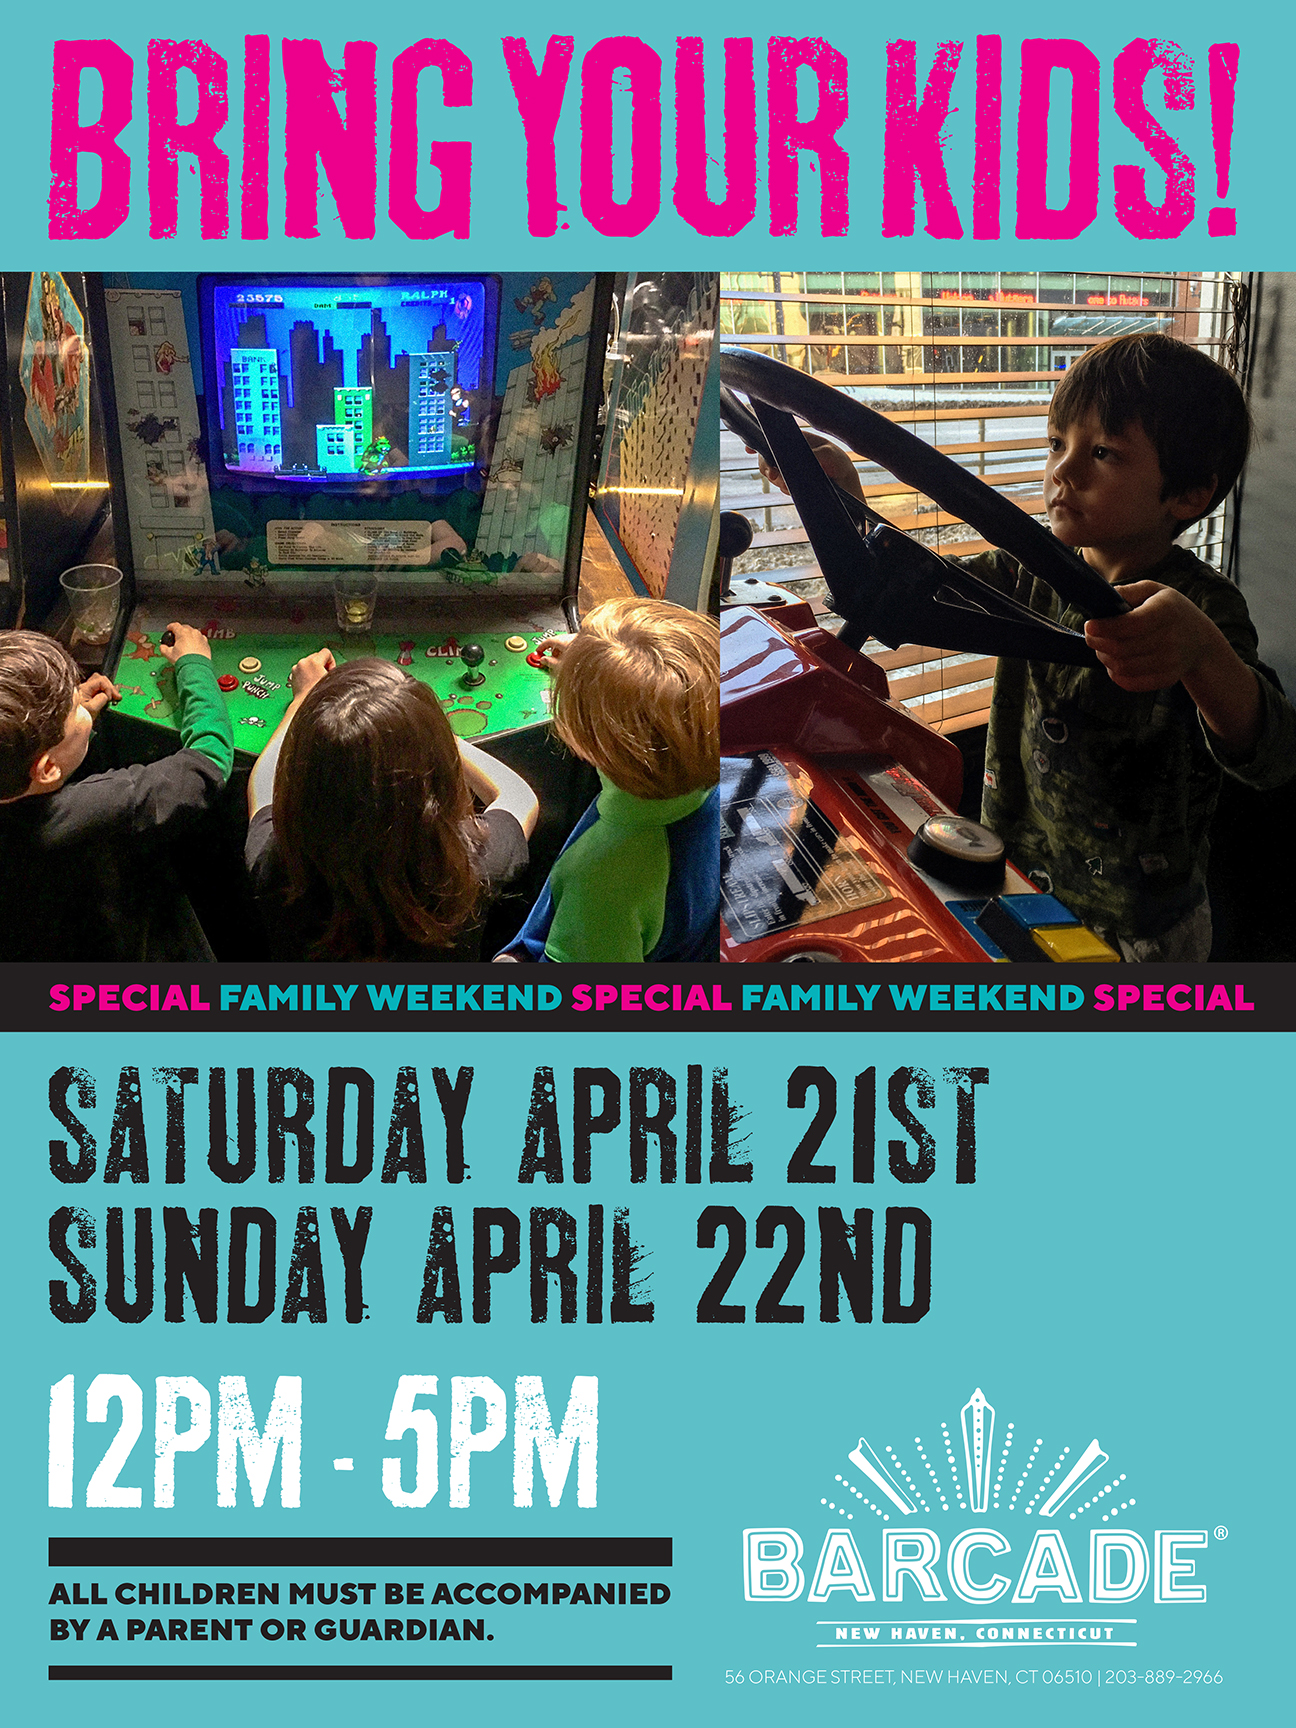 Bring Your Kids! Weekend 12pm-5PM — April 21st & April 22nd 2018 at Barcade® in New Haven, CT